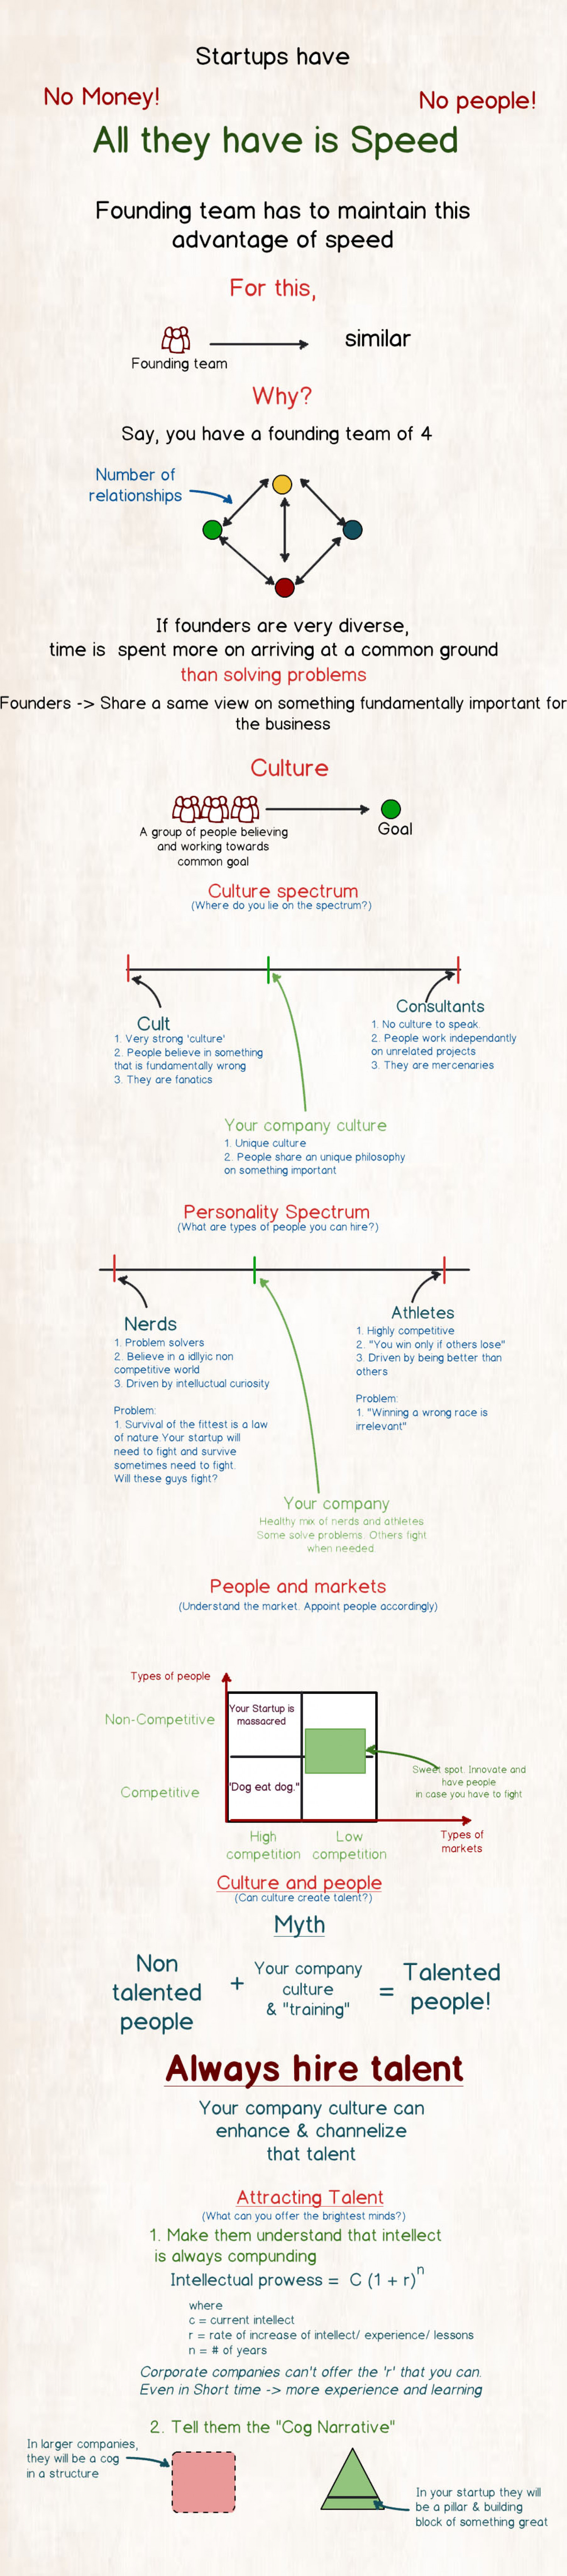 Startup Founding Team Infographic